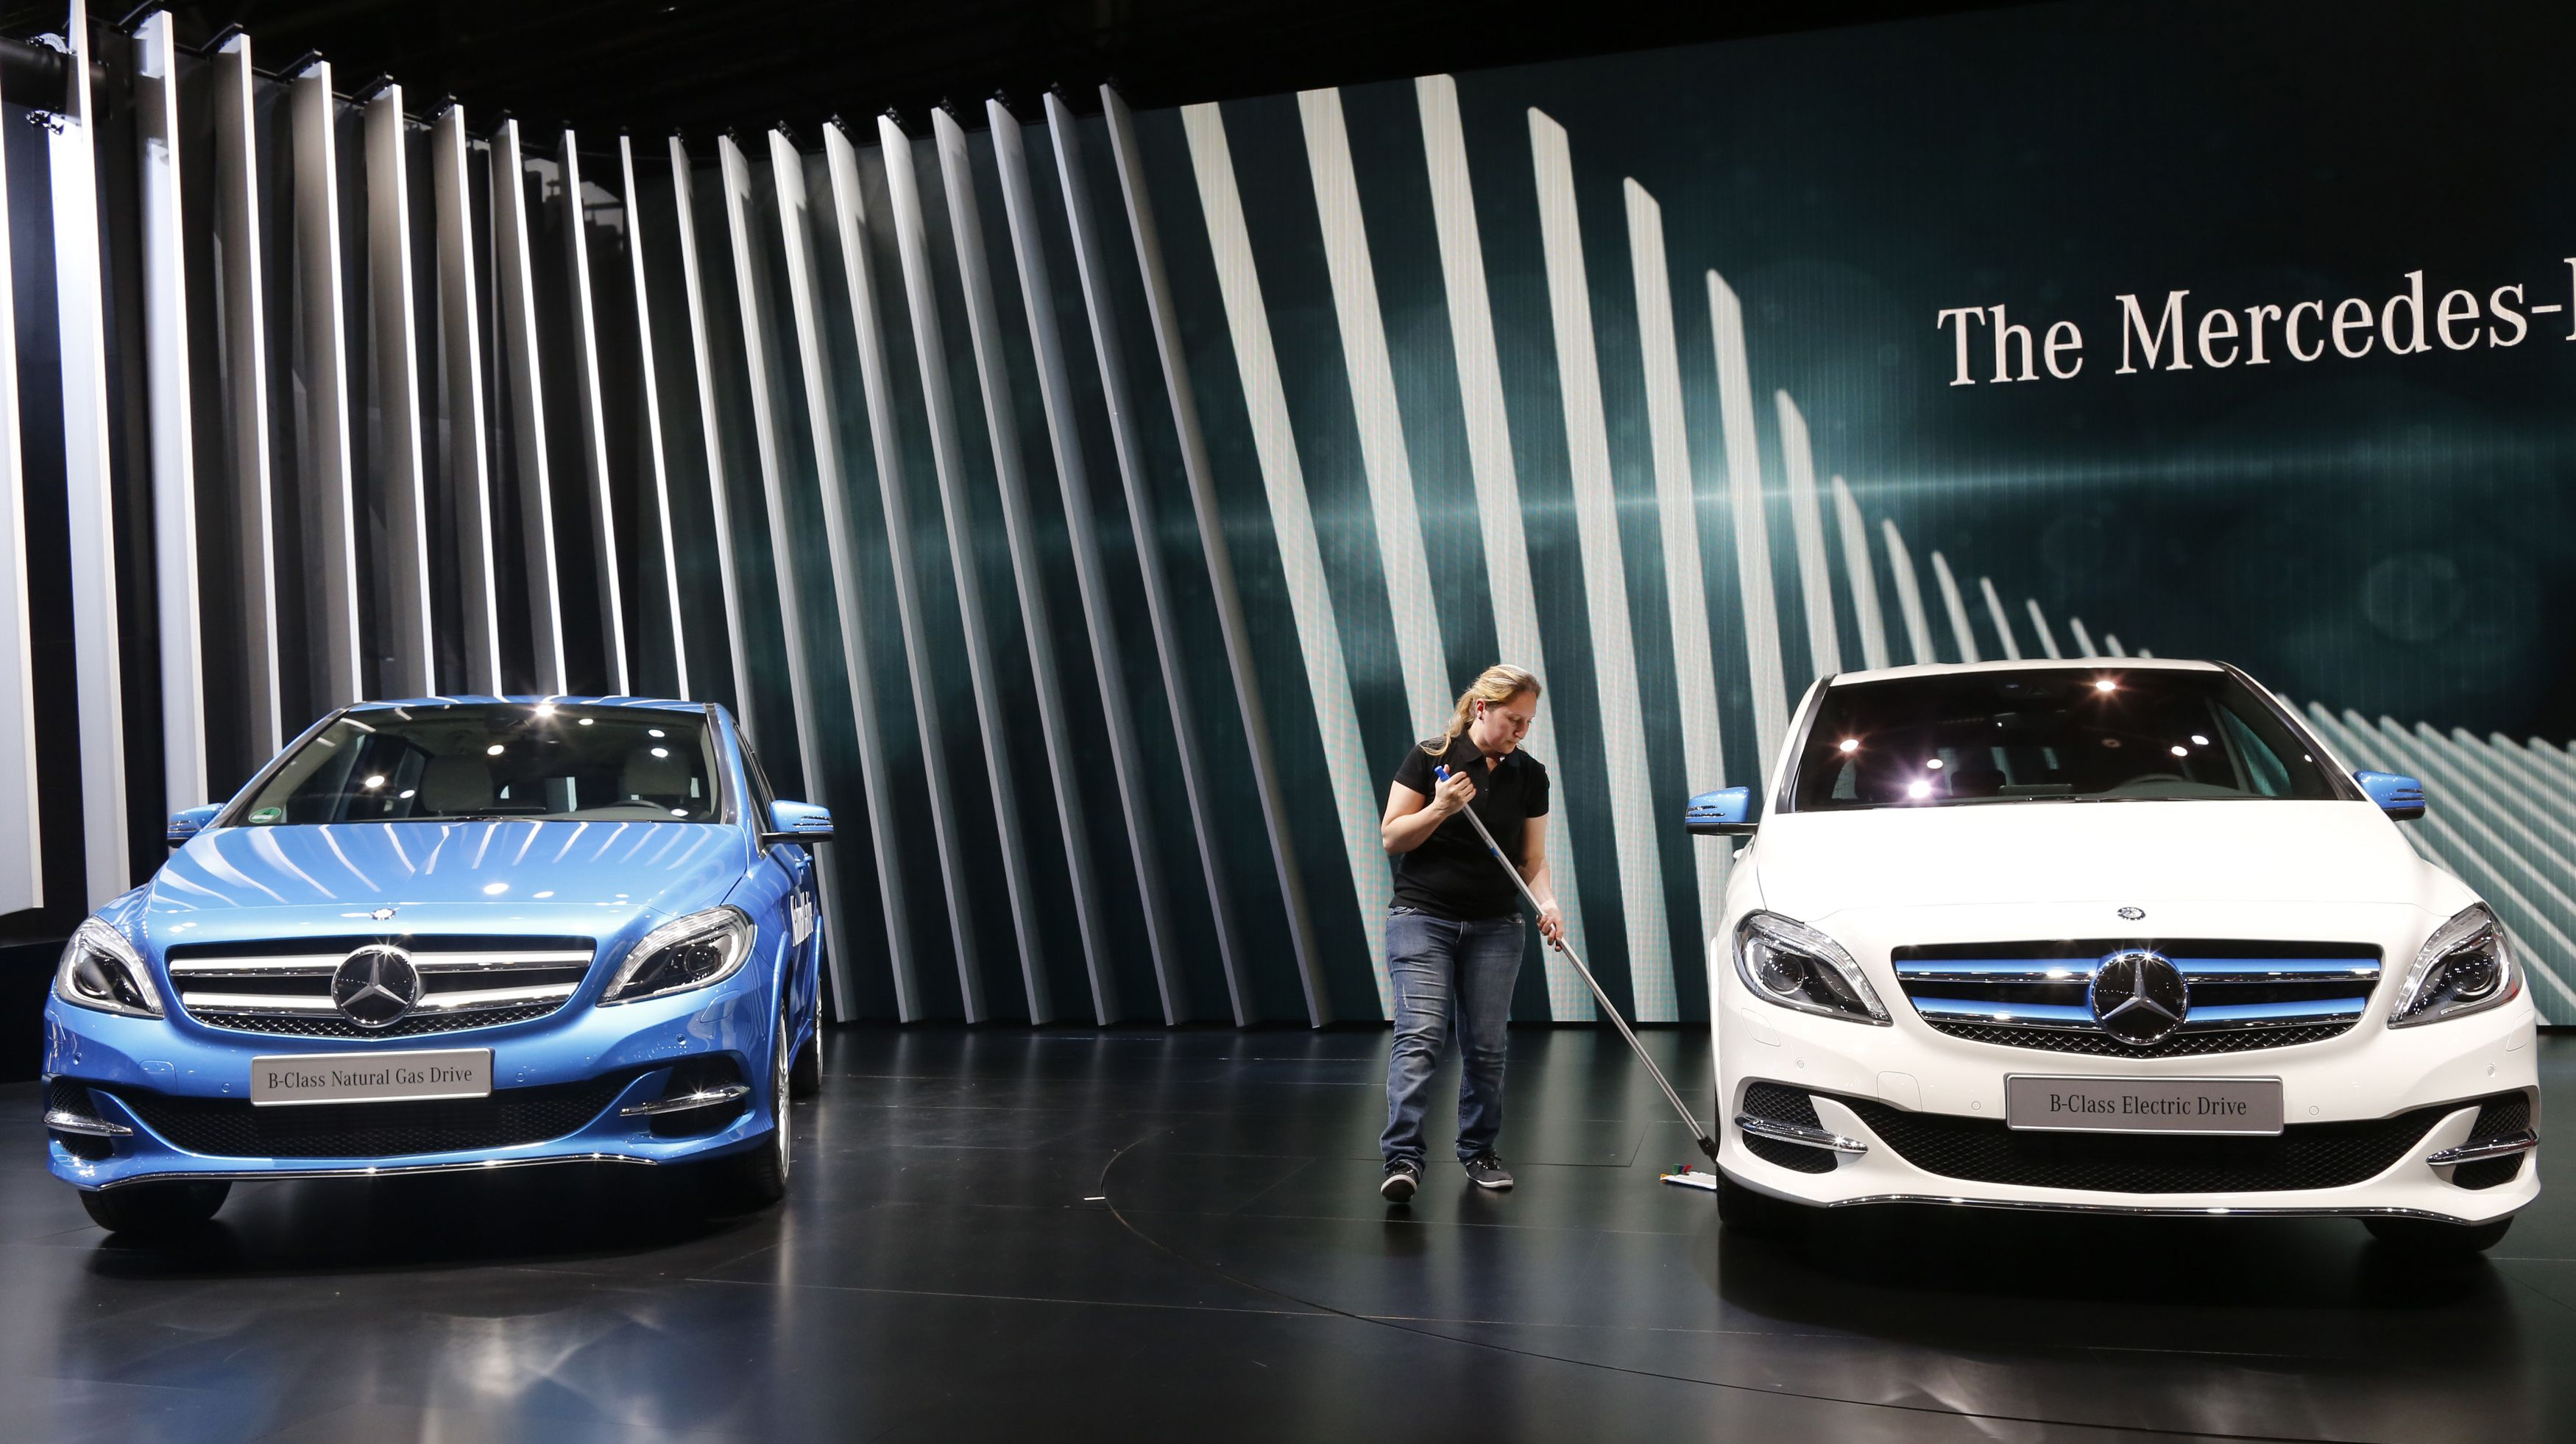 A woman cleans near Mercedes-Benz cars before a news conference on media day at the Paris Mondial de l'Automobile, October 2, 2014. The Paris auto show opens its doors to the public from October 4 to October 19.